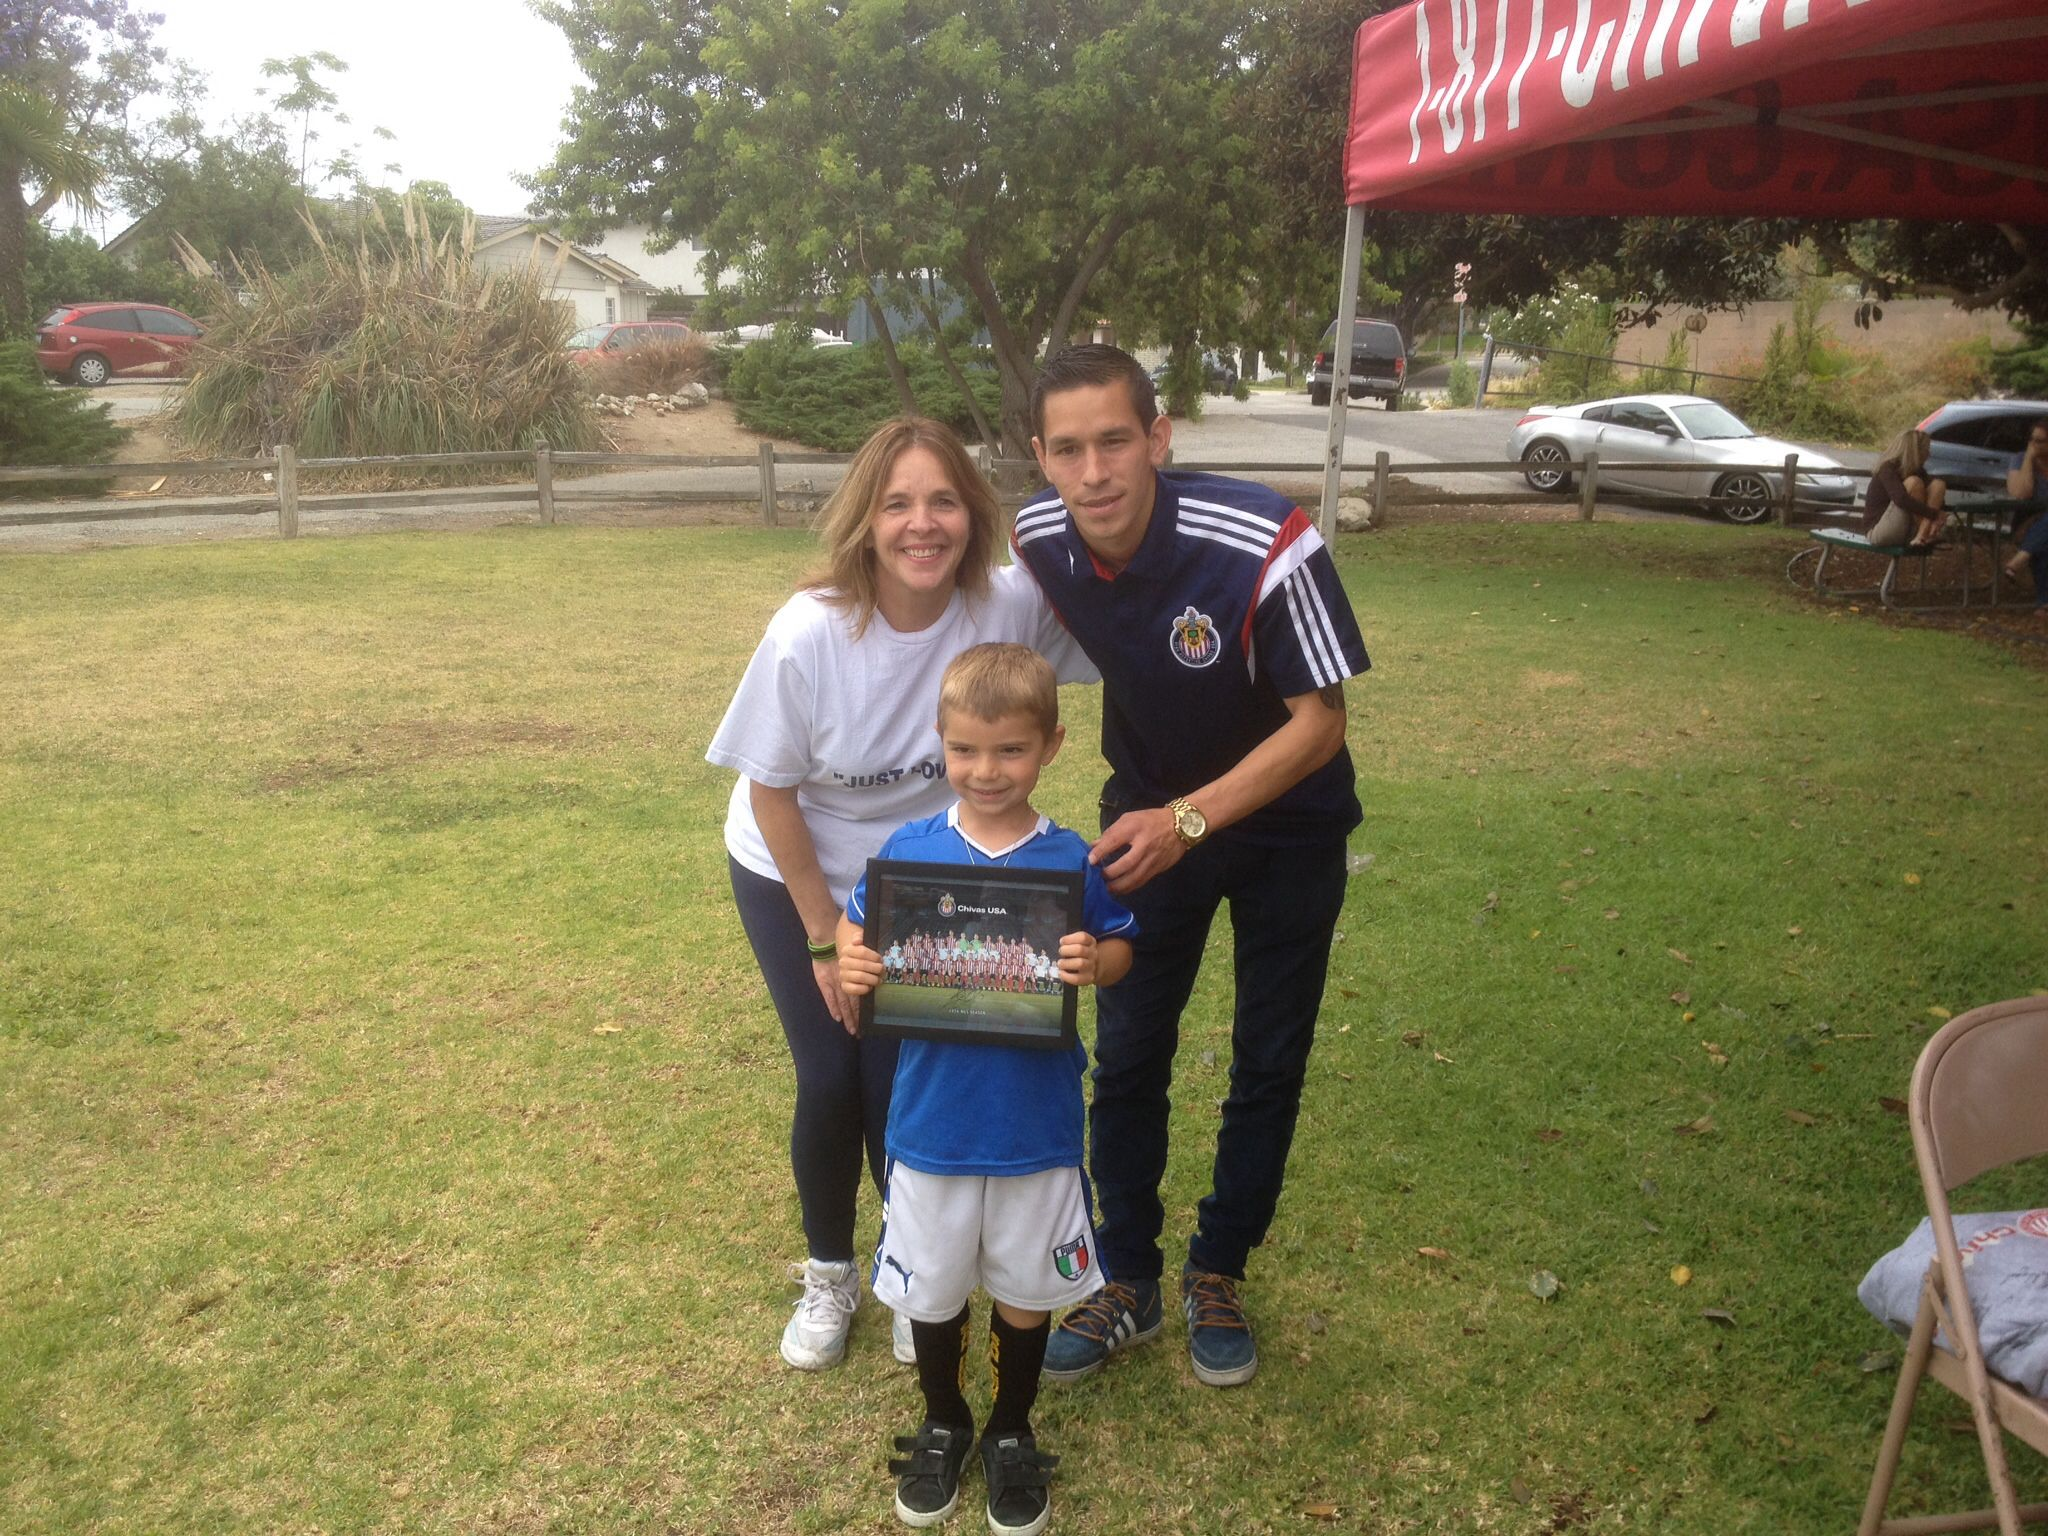 Brighter days. With Eric Avila from Chivas.......awesome soccer day. Donations to MISSINGPEACES...